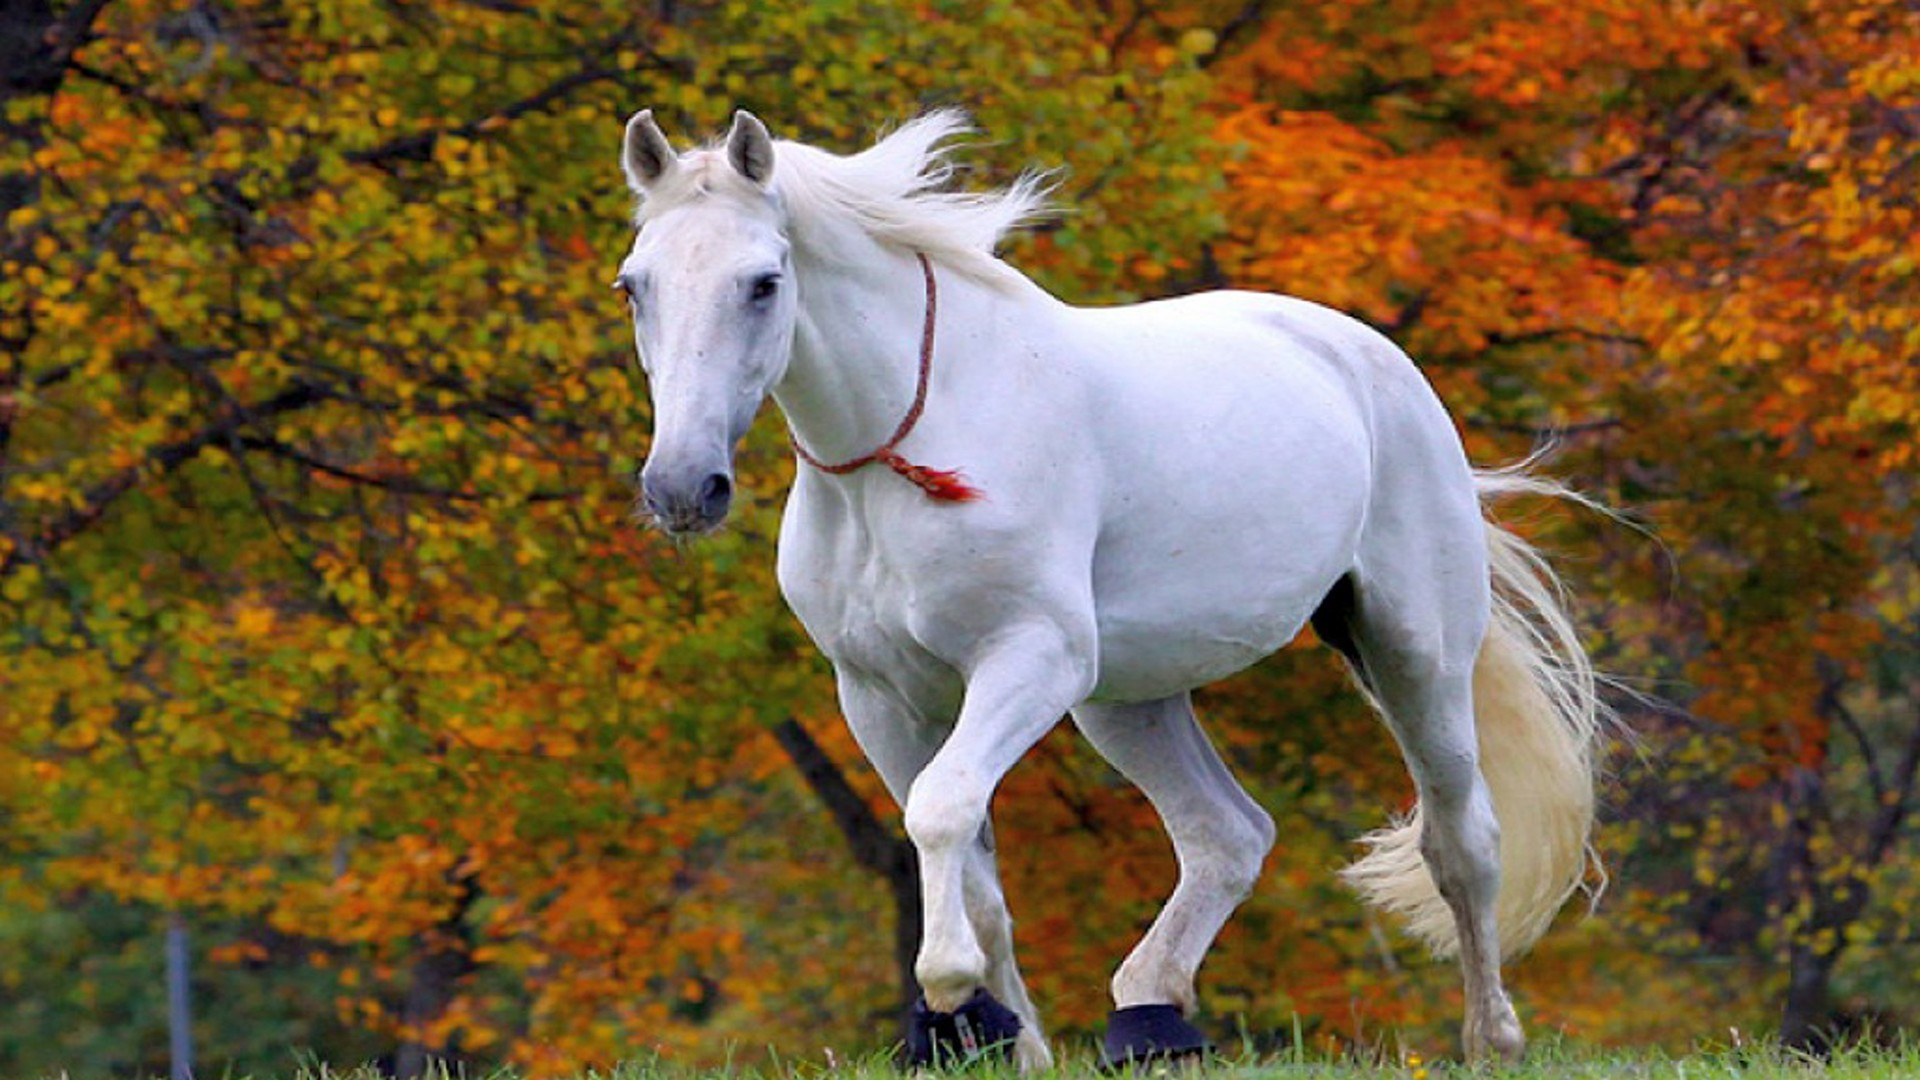 1920x1080 Running Horses Wallpaper Desktop Data Beautiful White Horse Wallpaper Hd 1920x1080 Wallpaper Teahub Io